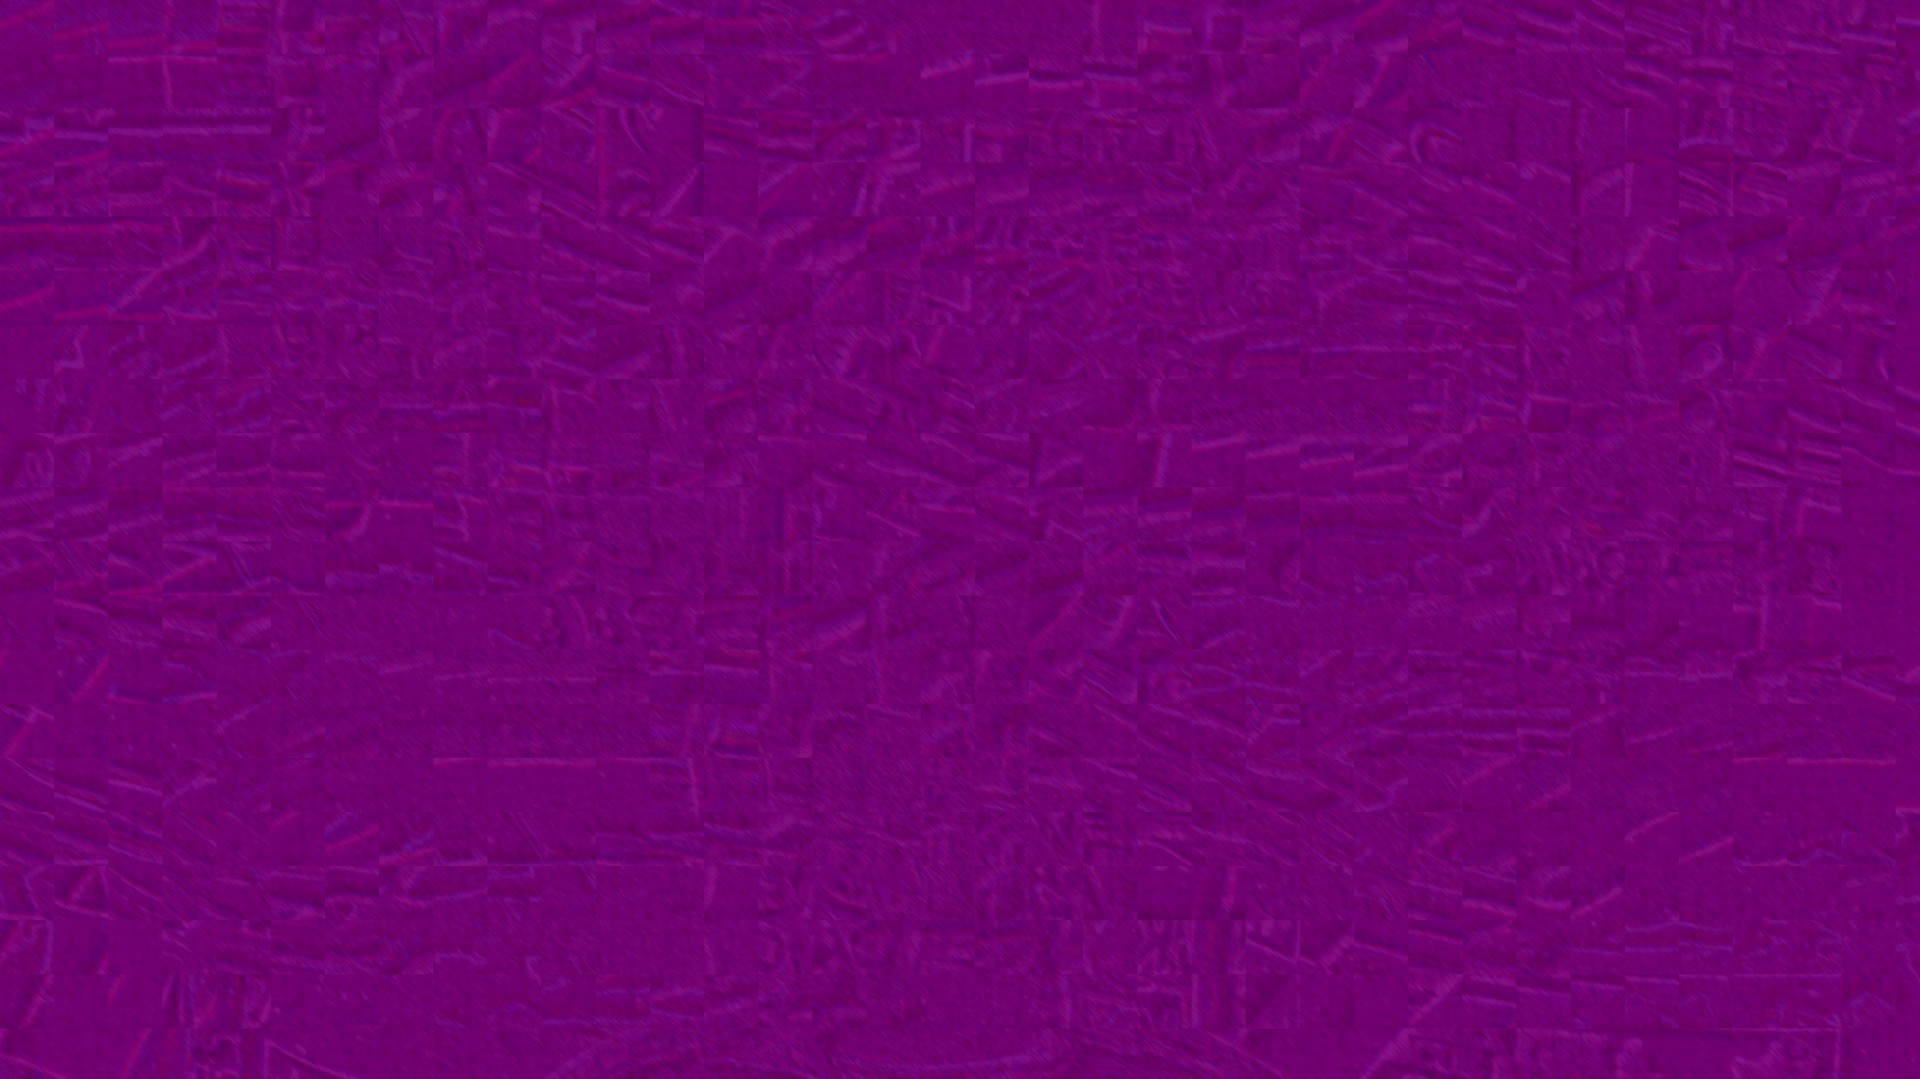 Purple Wallpaper Textured Pattern Free Stock Photo   Public Domain     Purple Wallpaper Textured Pattern